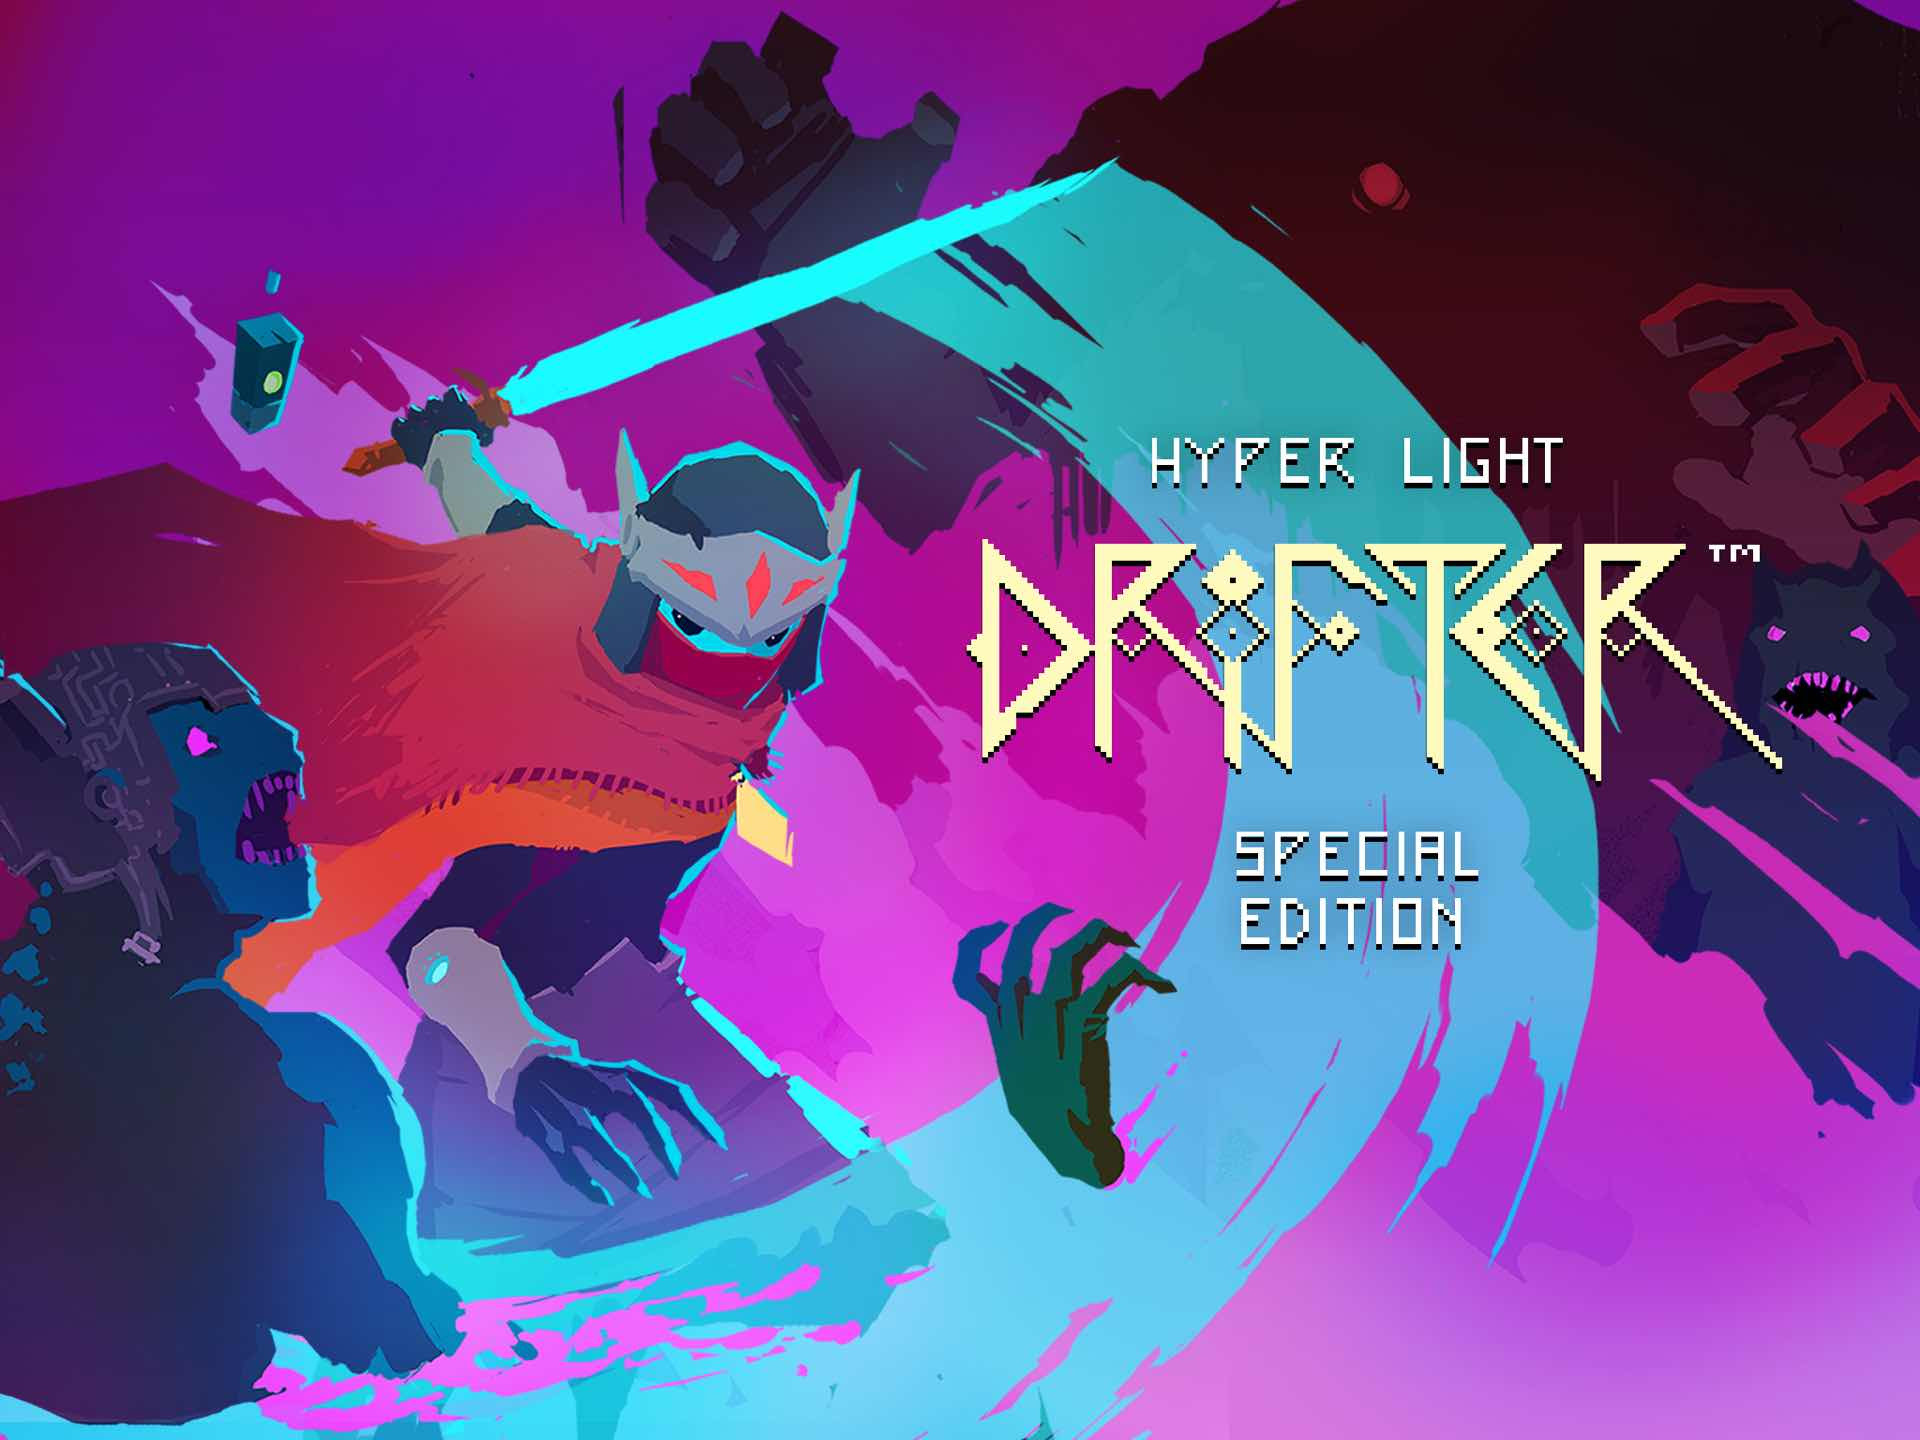 Hyper Light Drifter Special Edition For Ios Tools And Toys